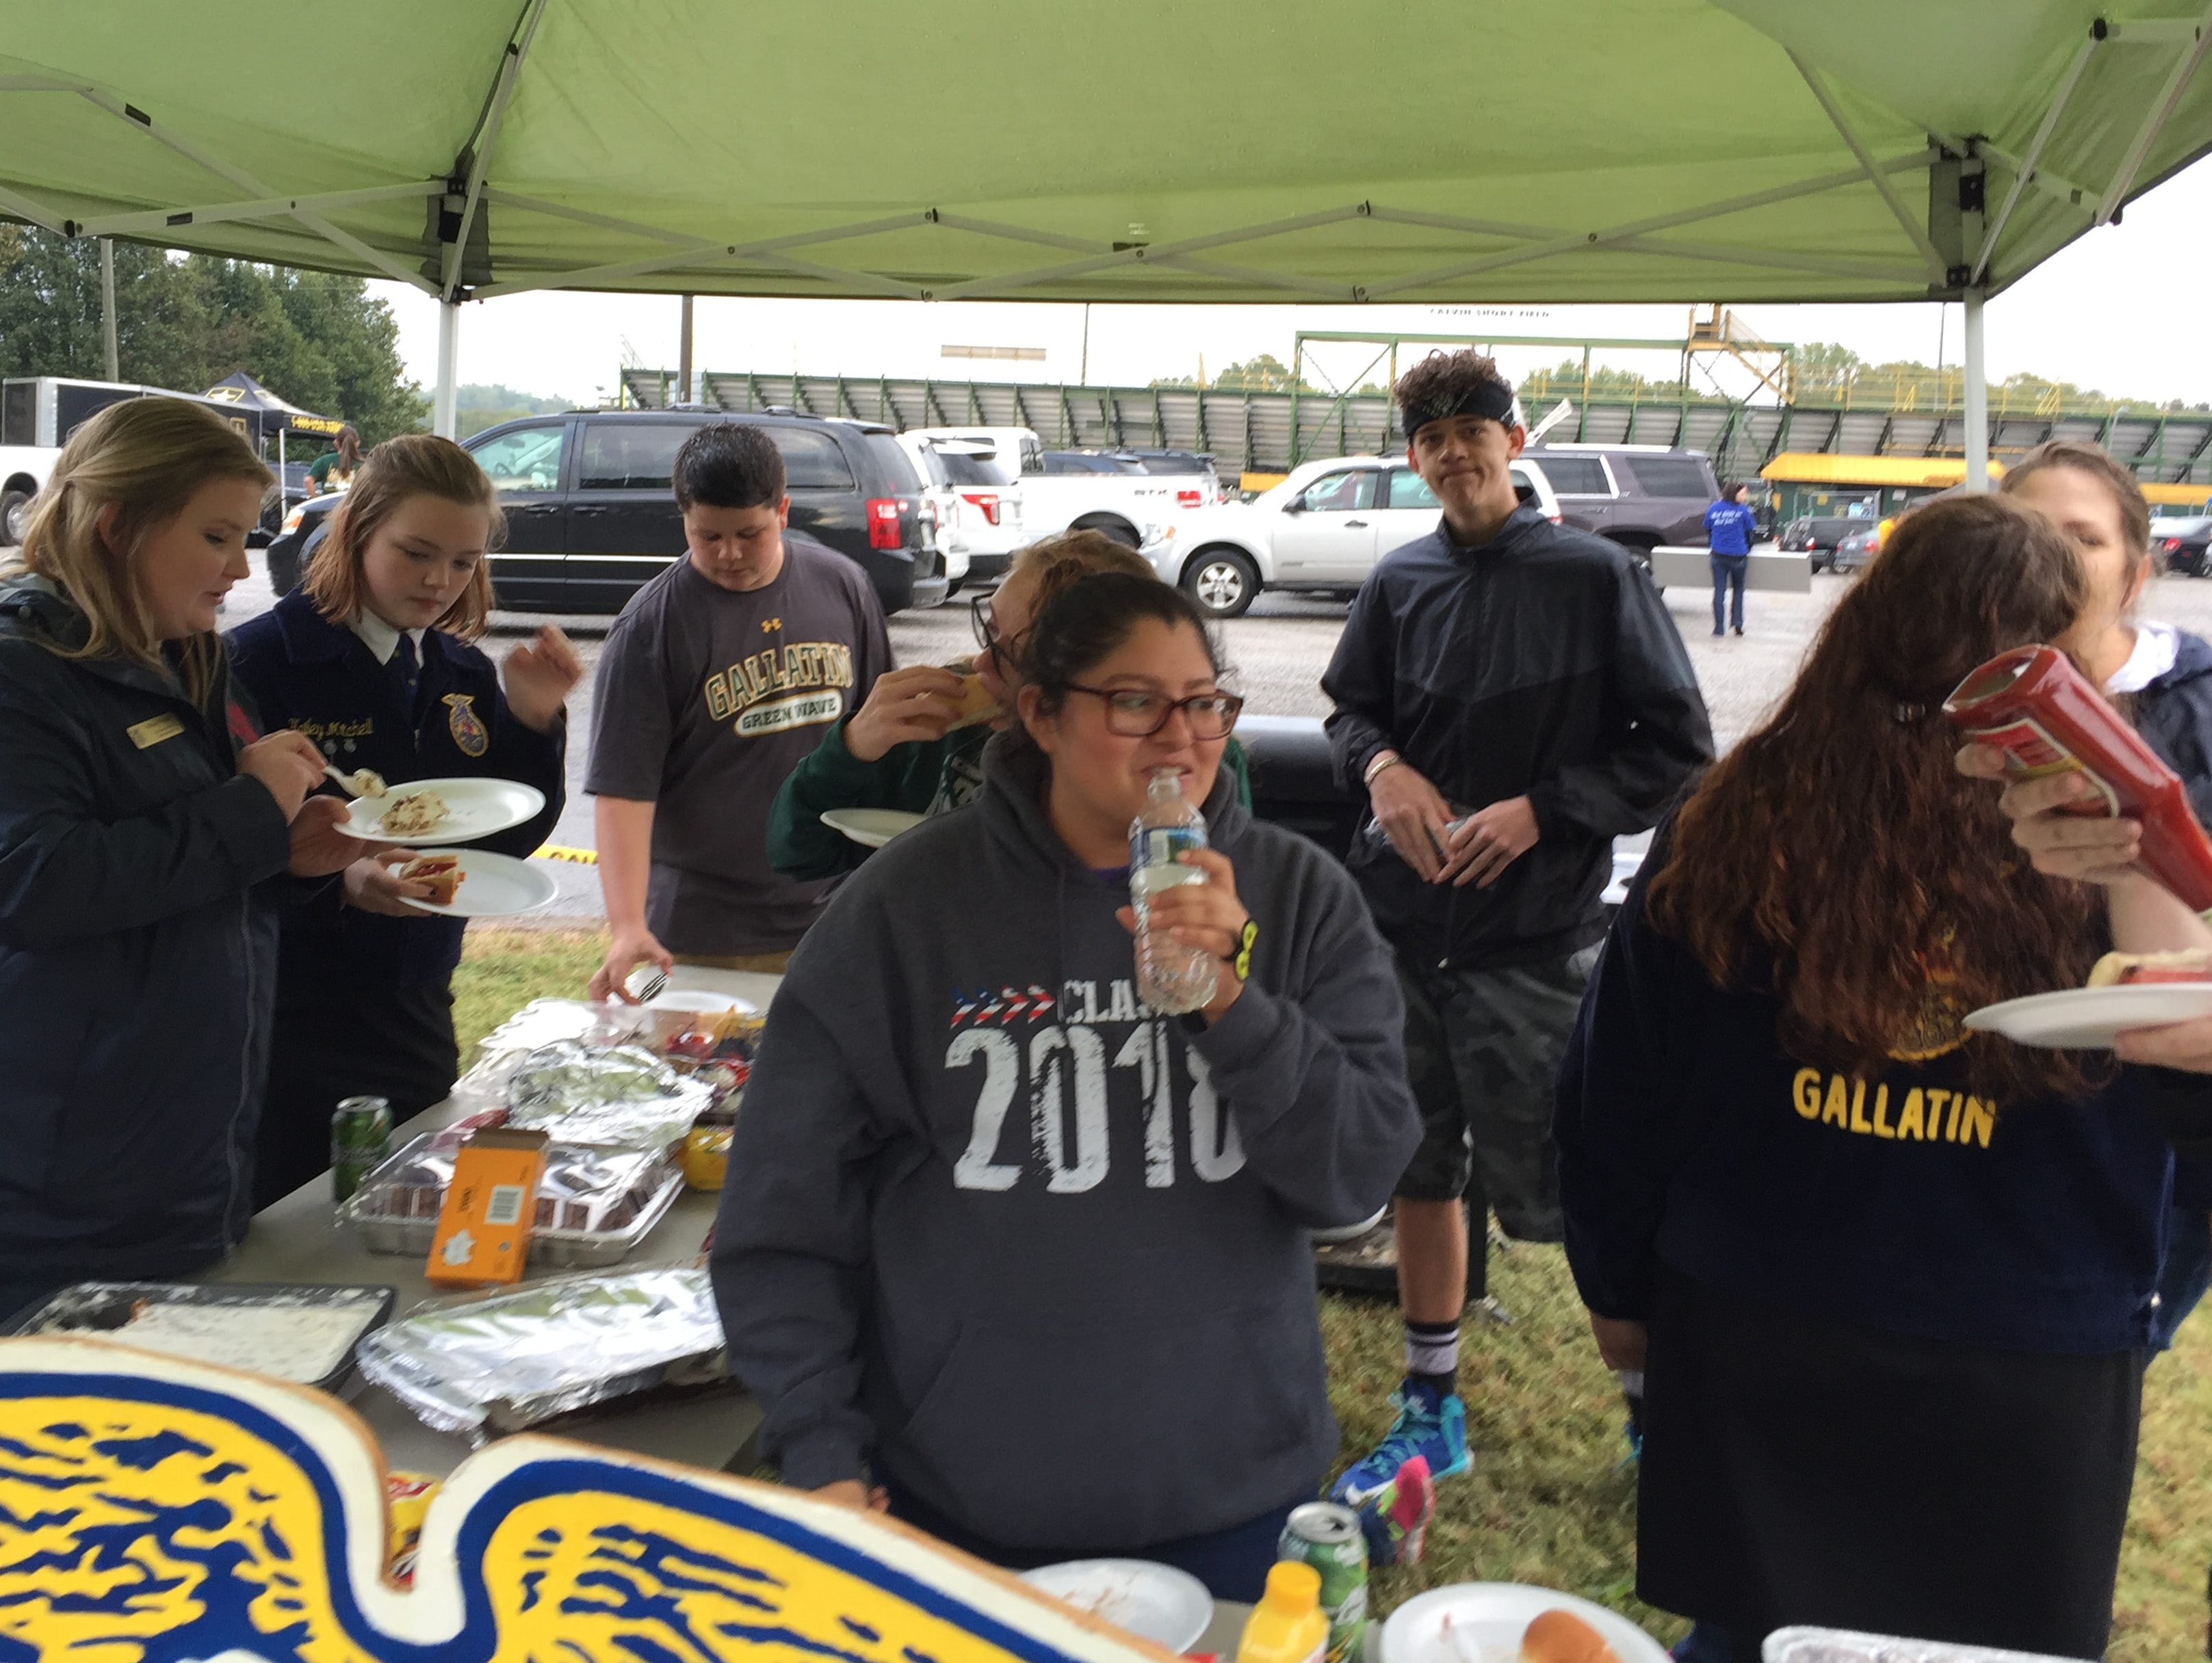 Members of the Gallatin High School Future Farmers of America chapter enjoy tailgating activities prior to their game against Beech on Friday, September 30, 2016.